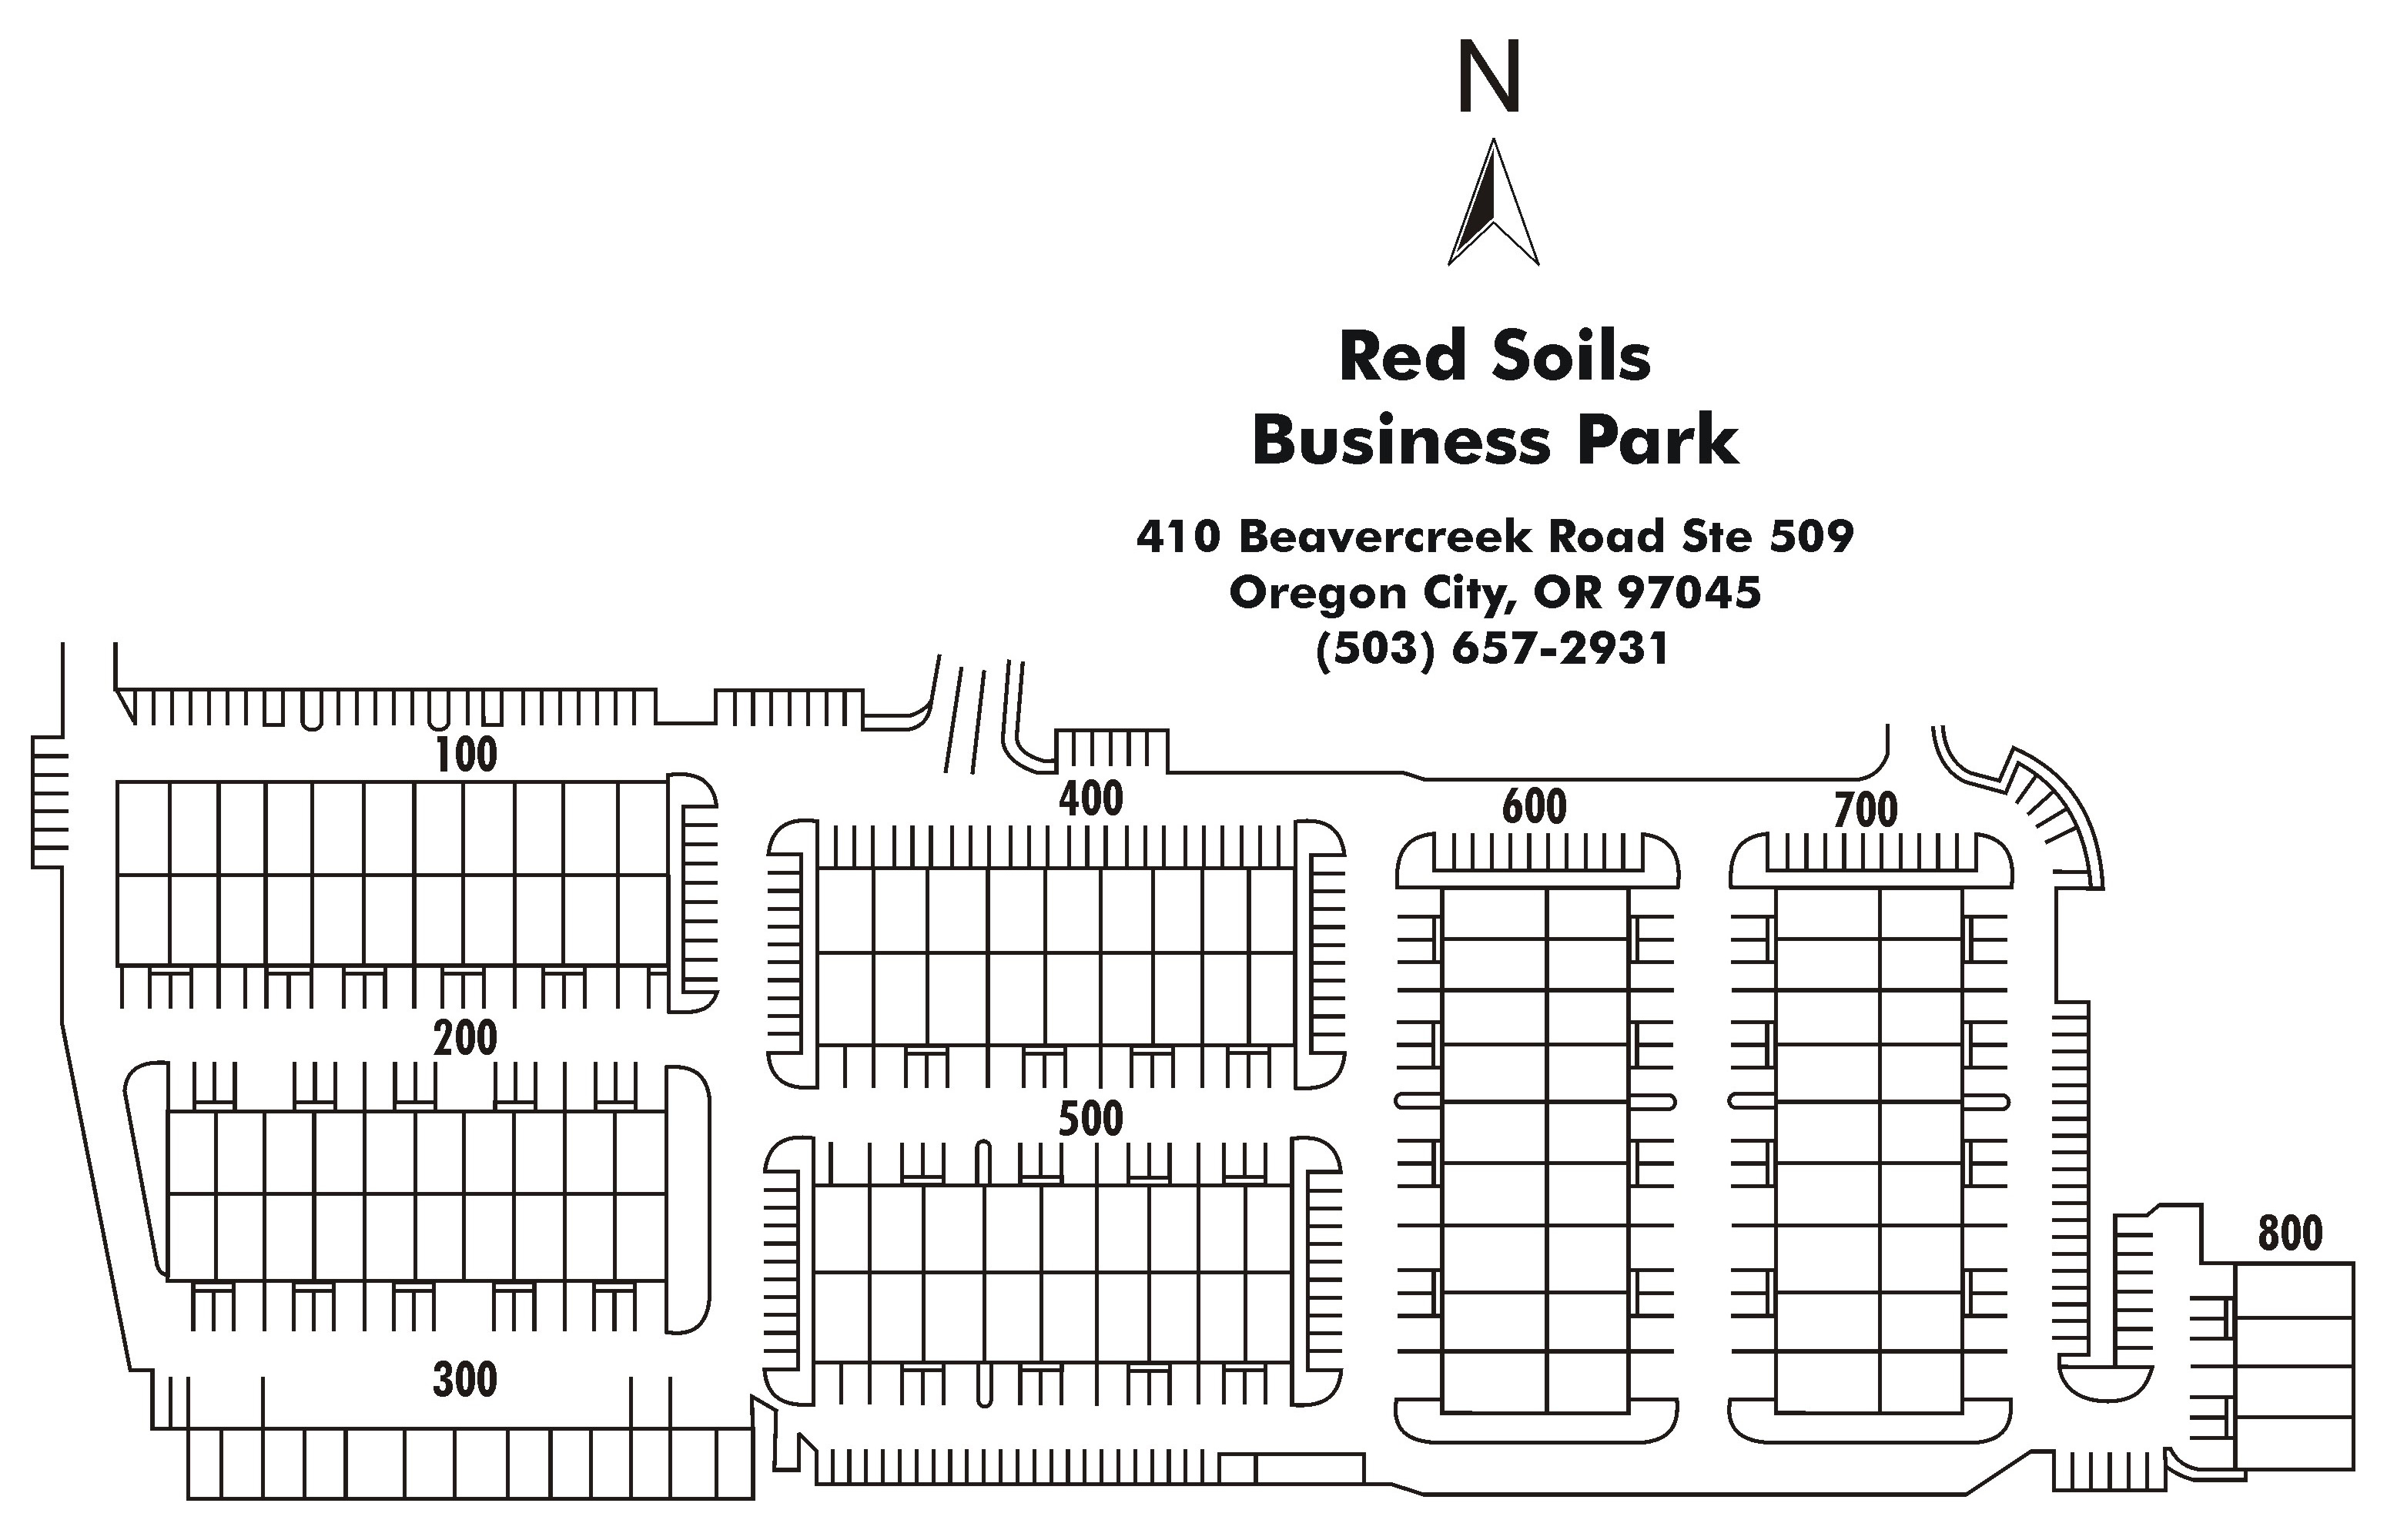 Red Soils Business Park Property Map